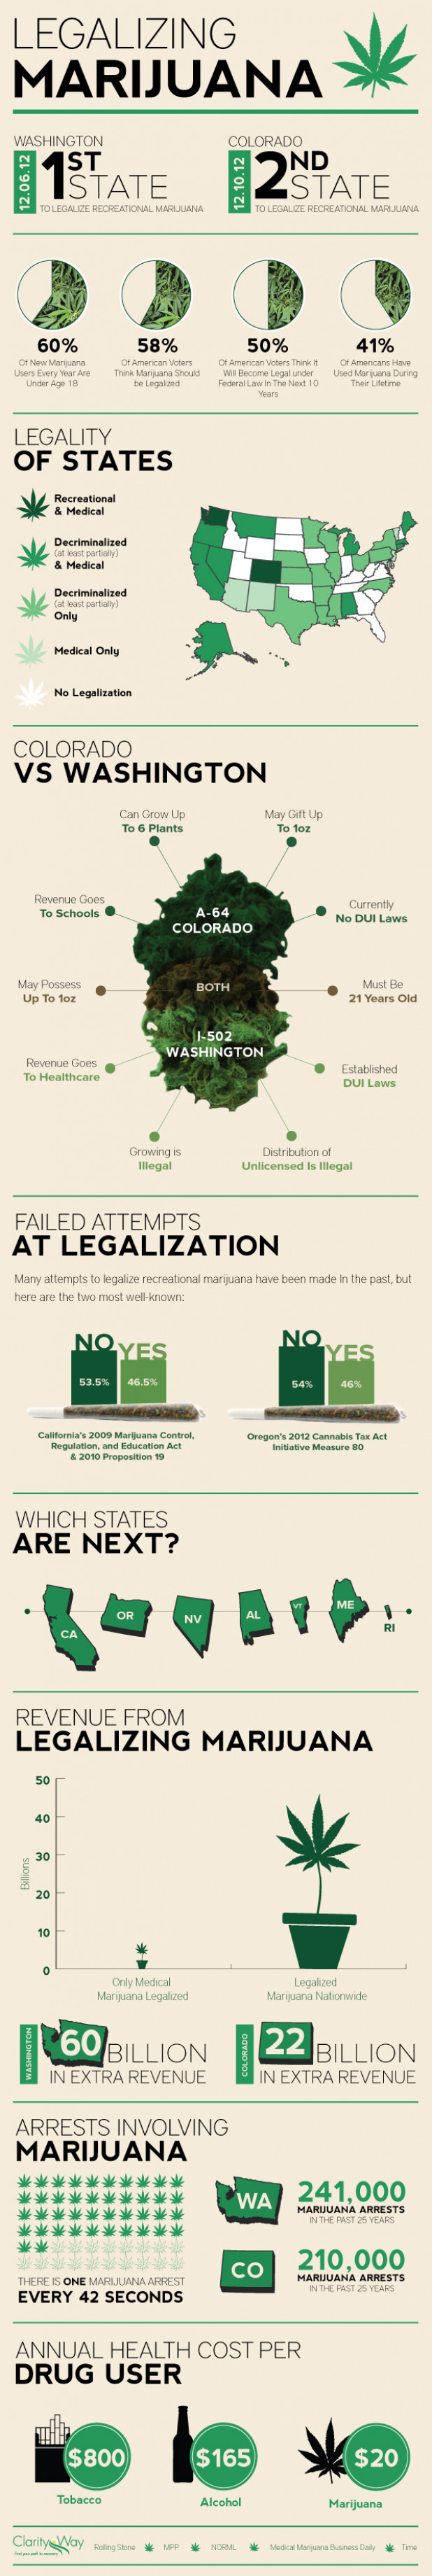 Legalizing Marijuana: The State vs Federal Pot Legislation Conundrum